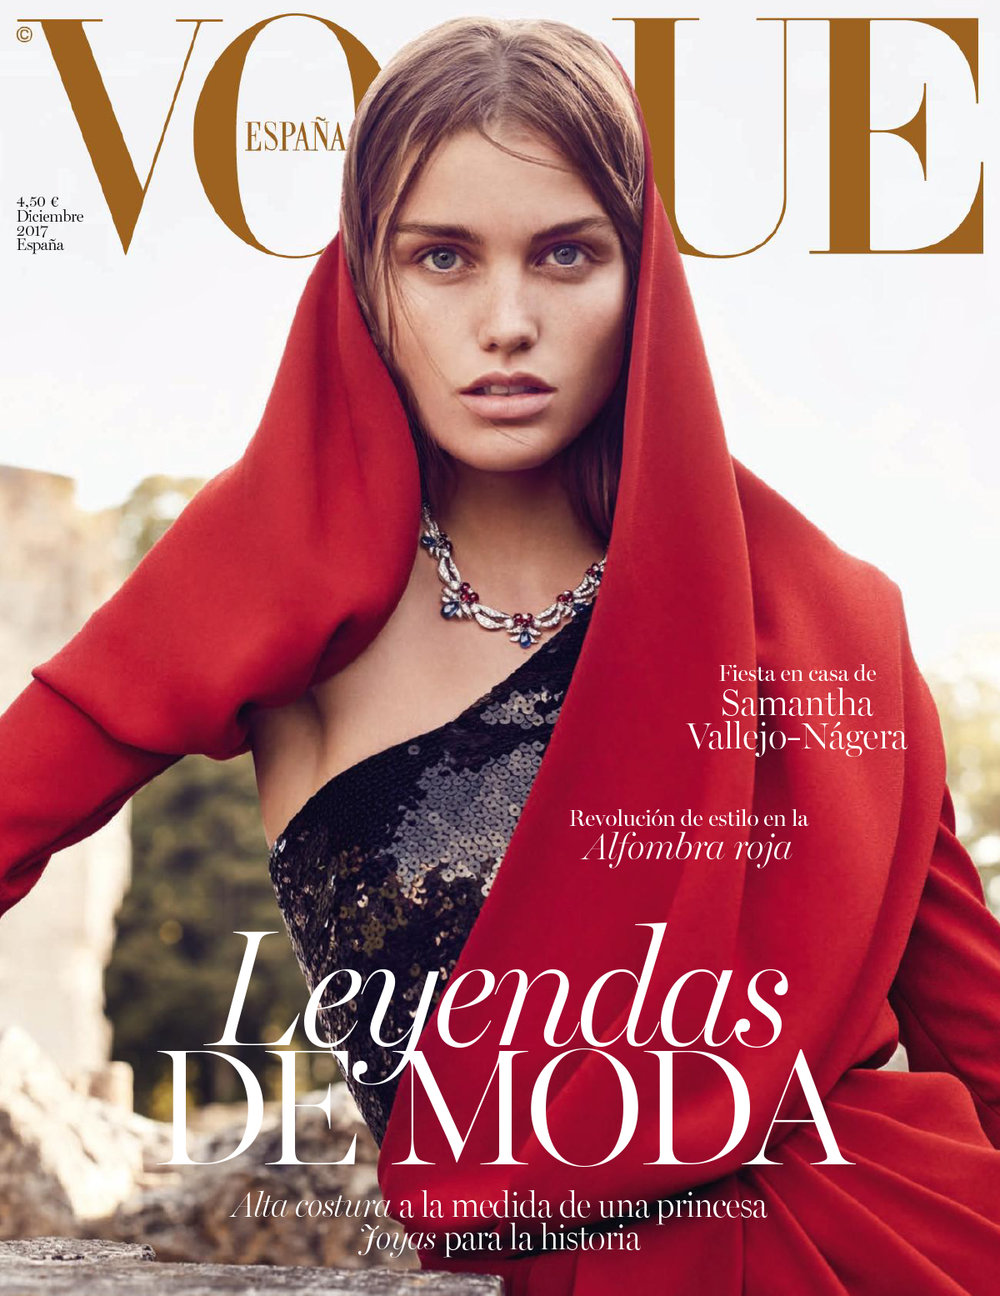 VOGUE ESPAÑA DECEMBER 2017 2.jpg